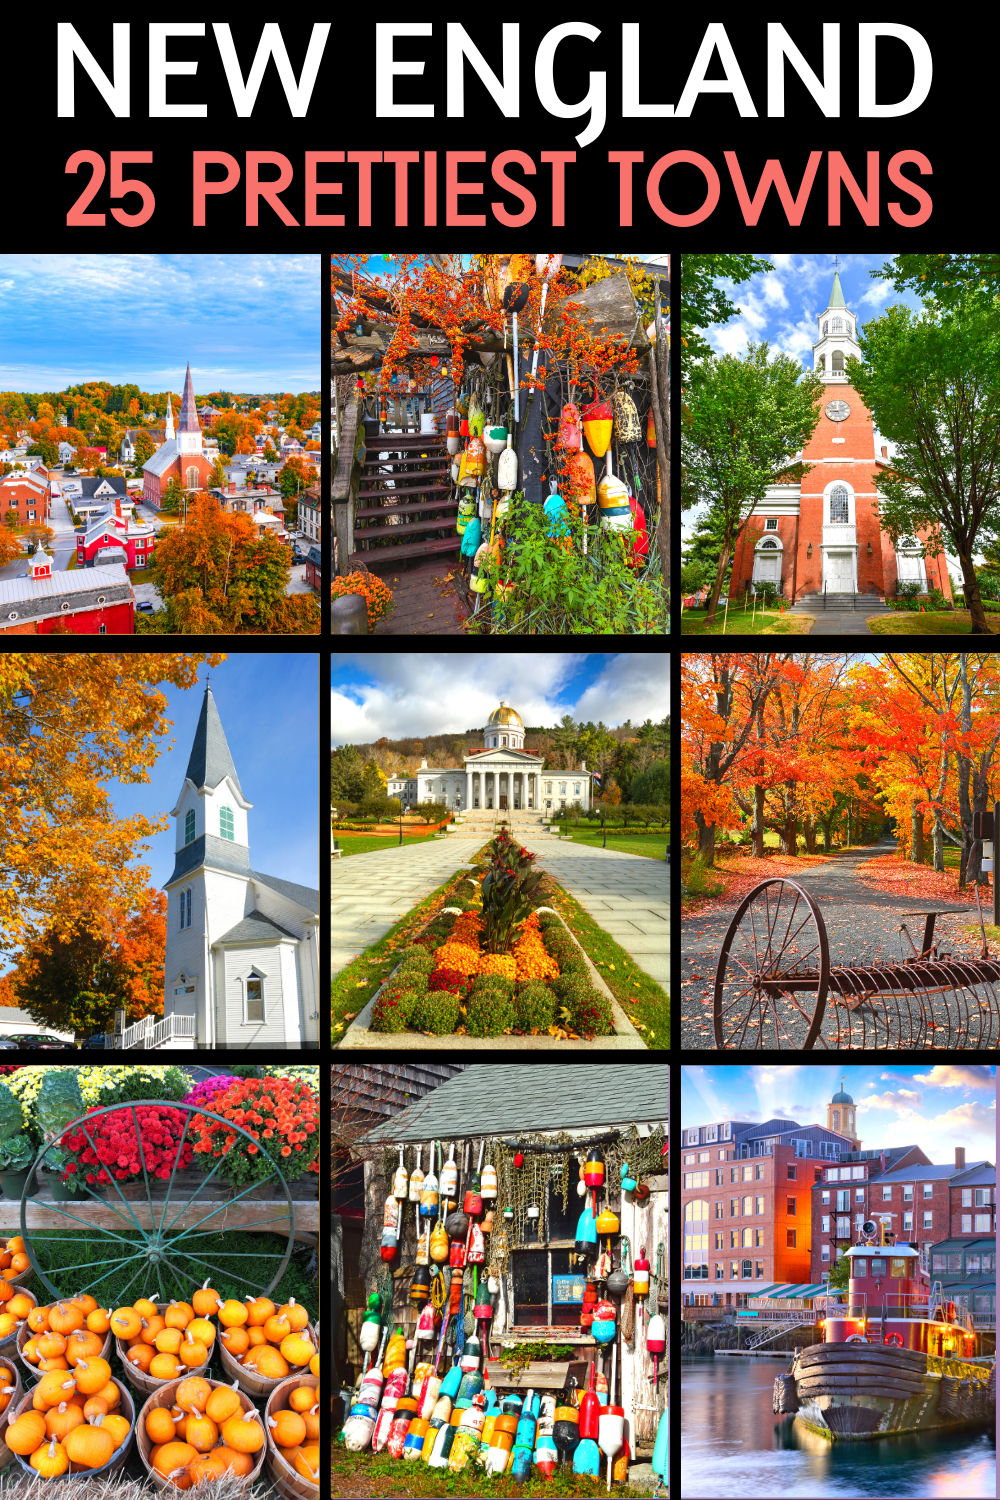 25 Prettiest Towns in New England For An East Coast Road Trip